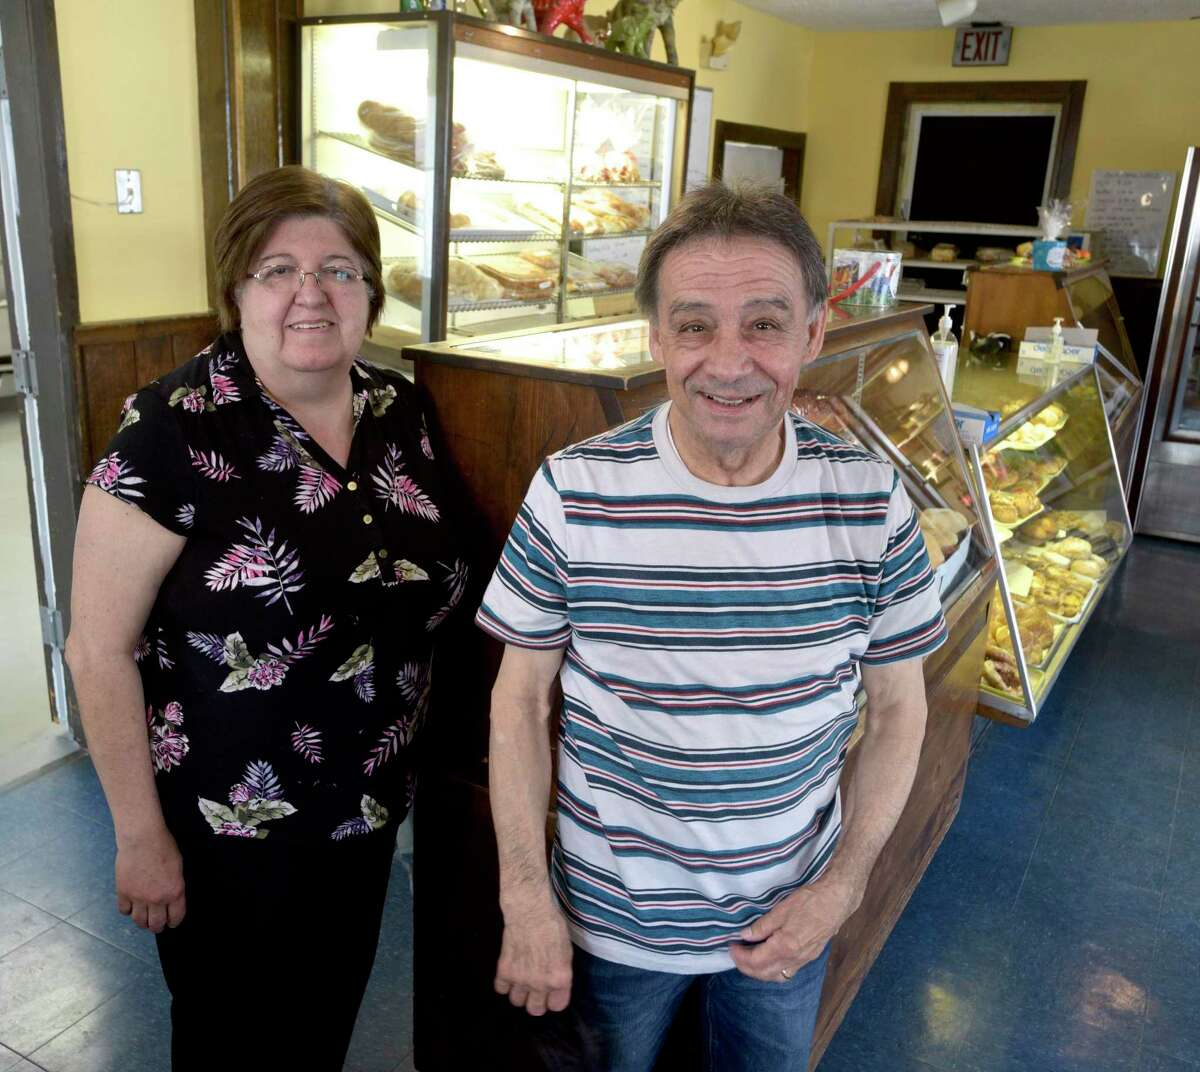 Longtime husband-and-wife owners of Ele-Fant Bakery in Danbury, Conn, are retiring and have sold the business. Linda and Alfredo DoVale owned the bakery that has been in her family for 4 generations and more than 6 decades. Wednesday, April 28, 2021.